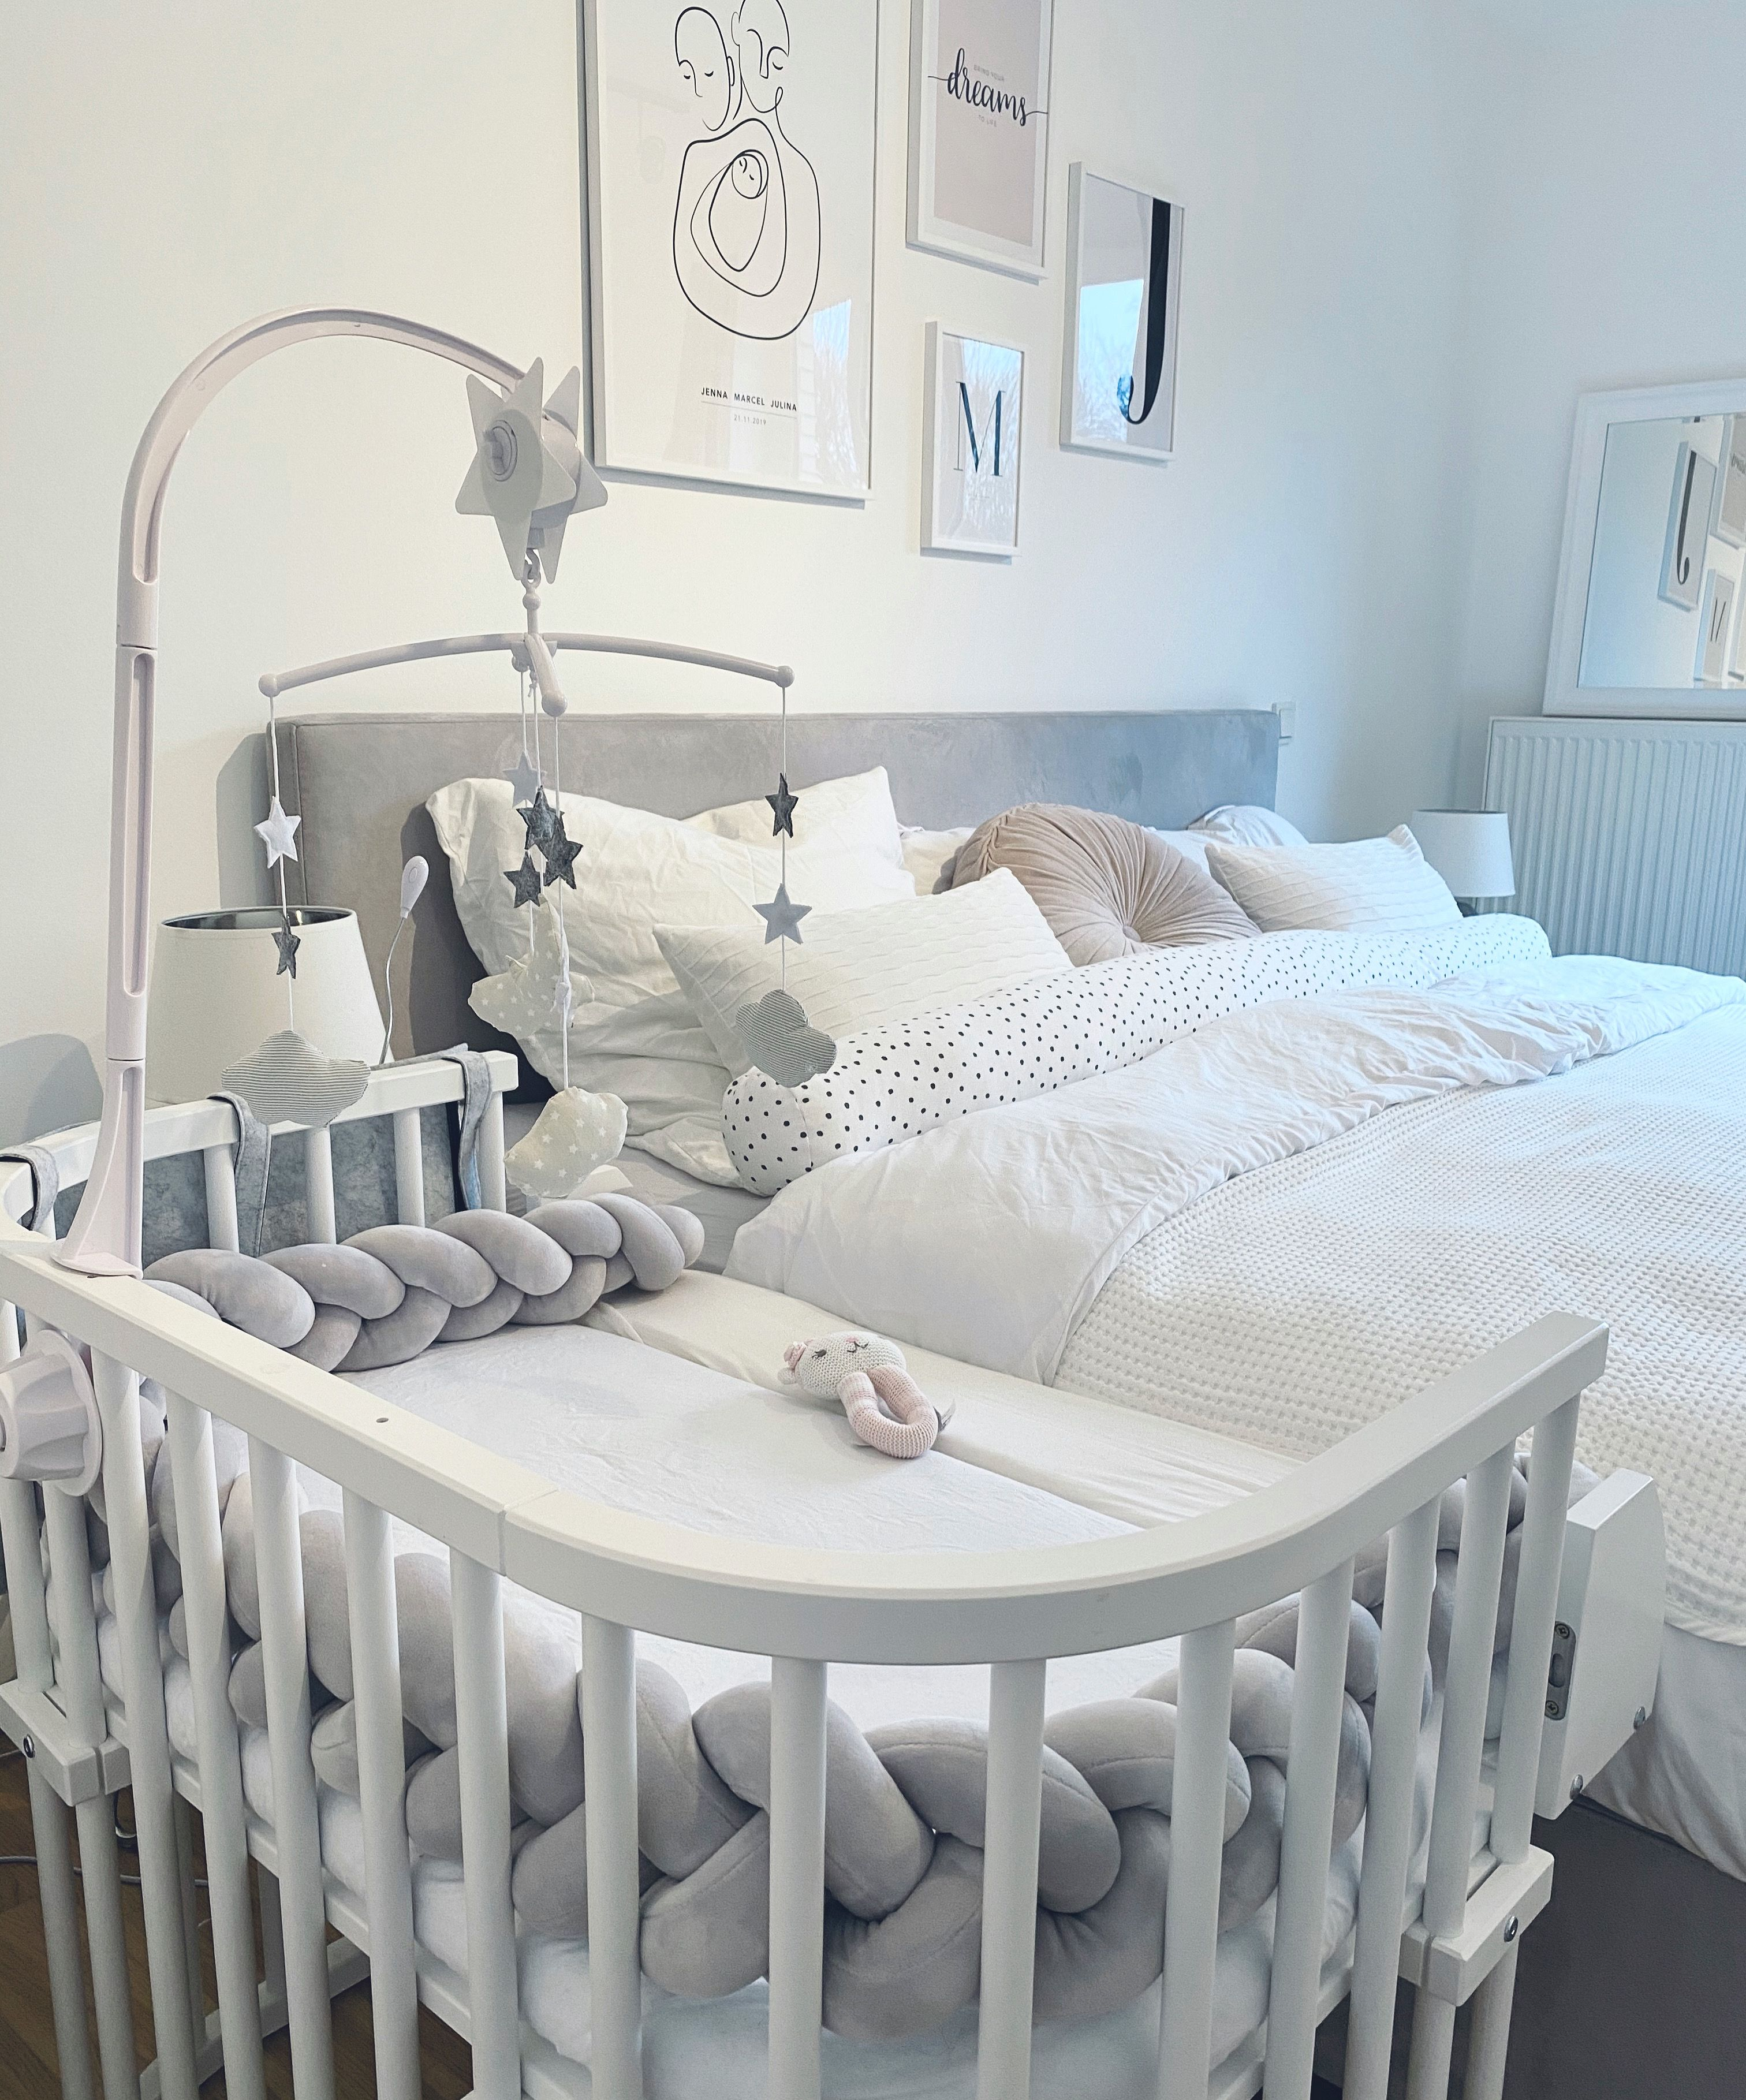 Bedroom With Baby Bed In 2020 Baby Boy Room Nursery Cozy Baby Room Baby Bed